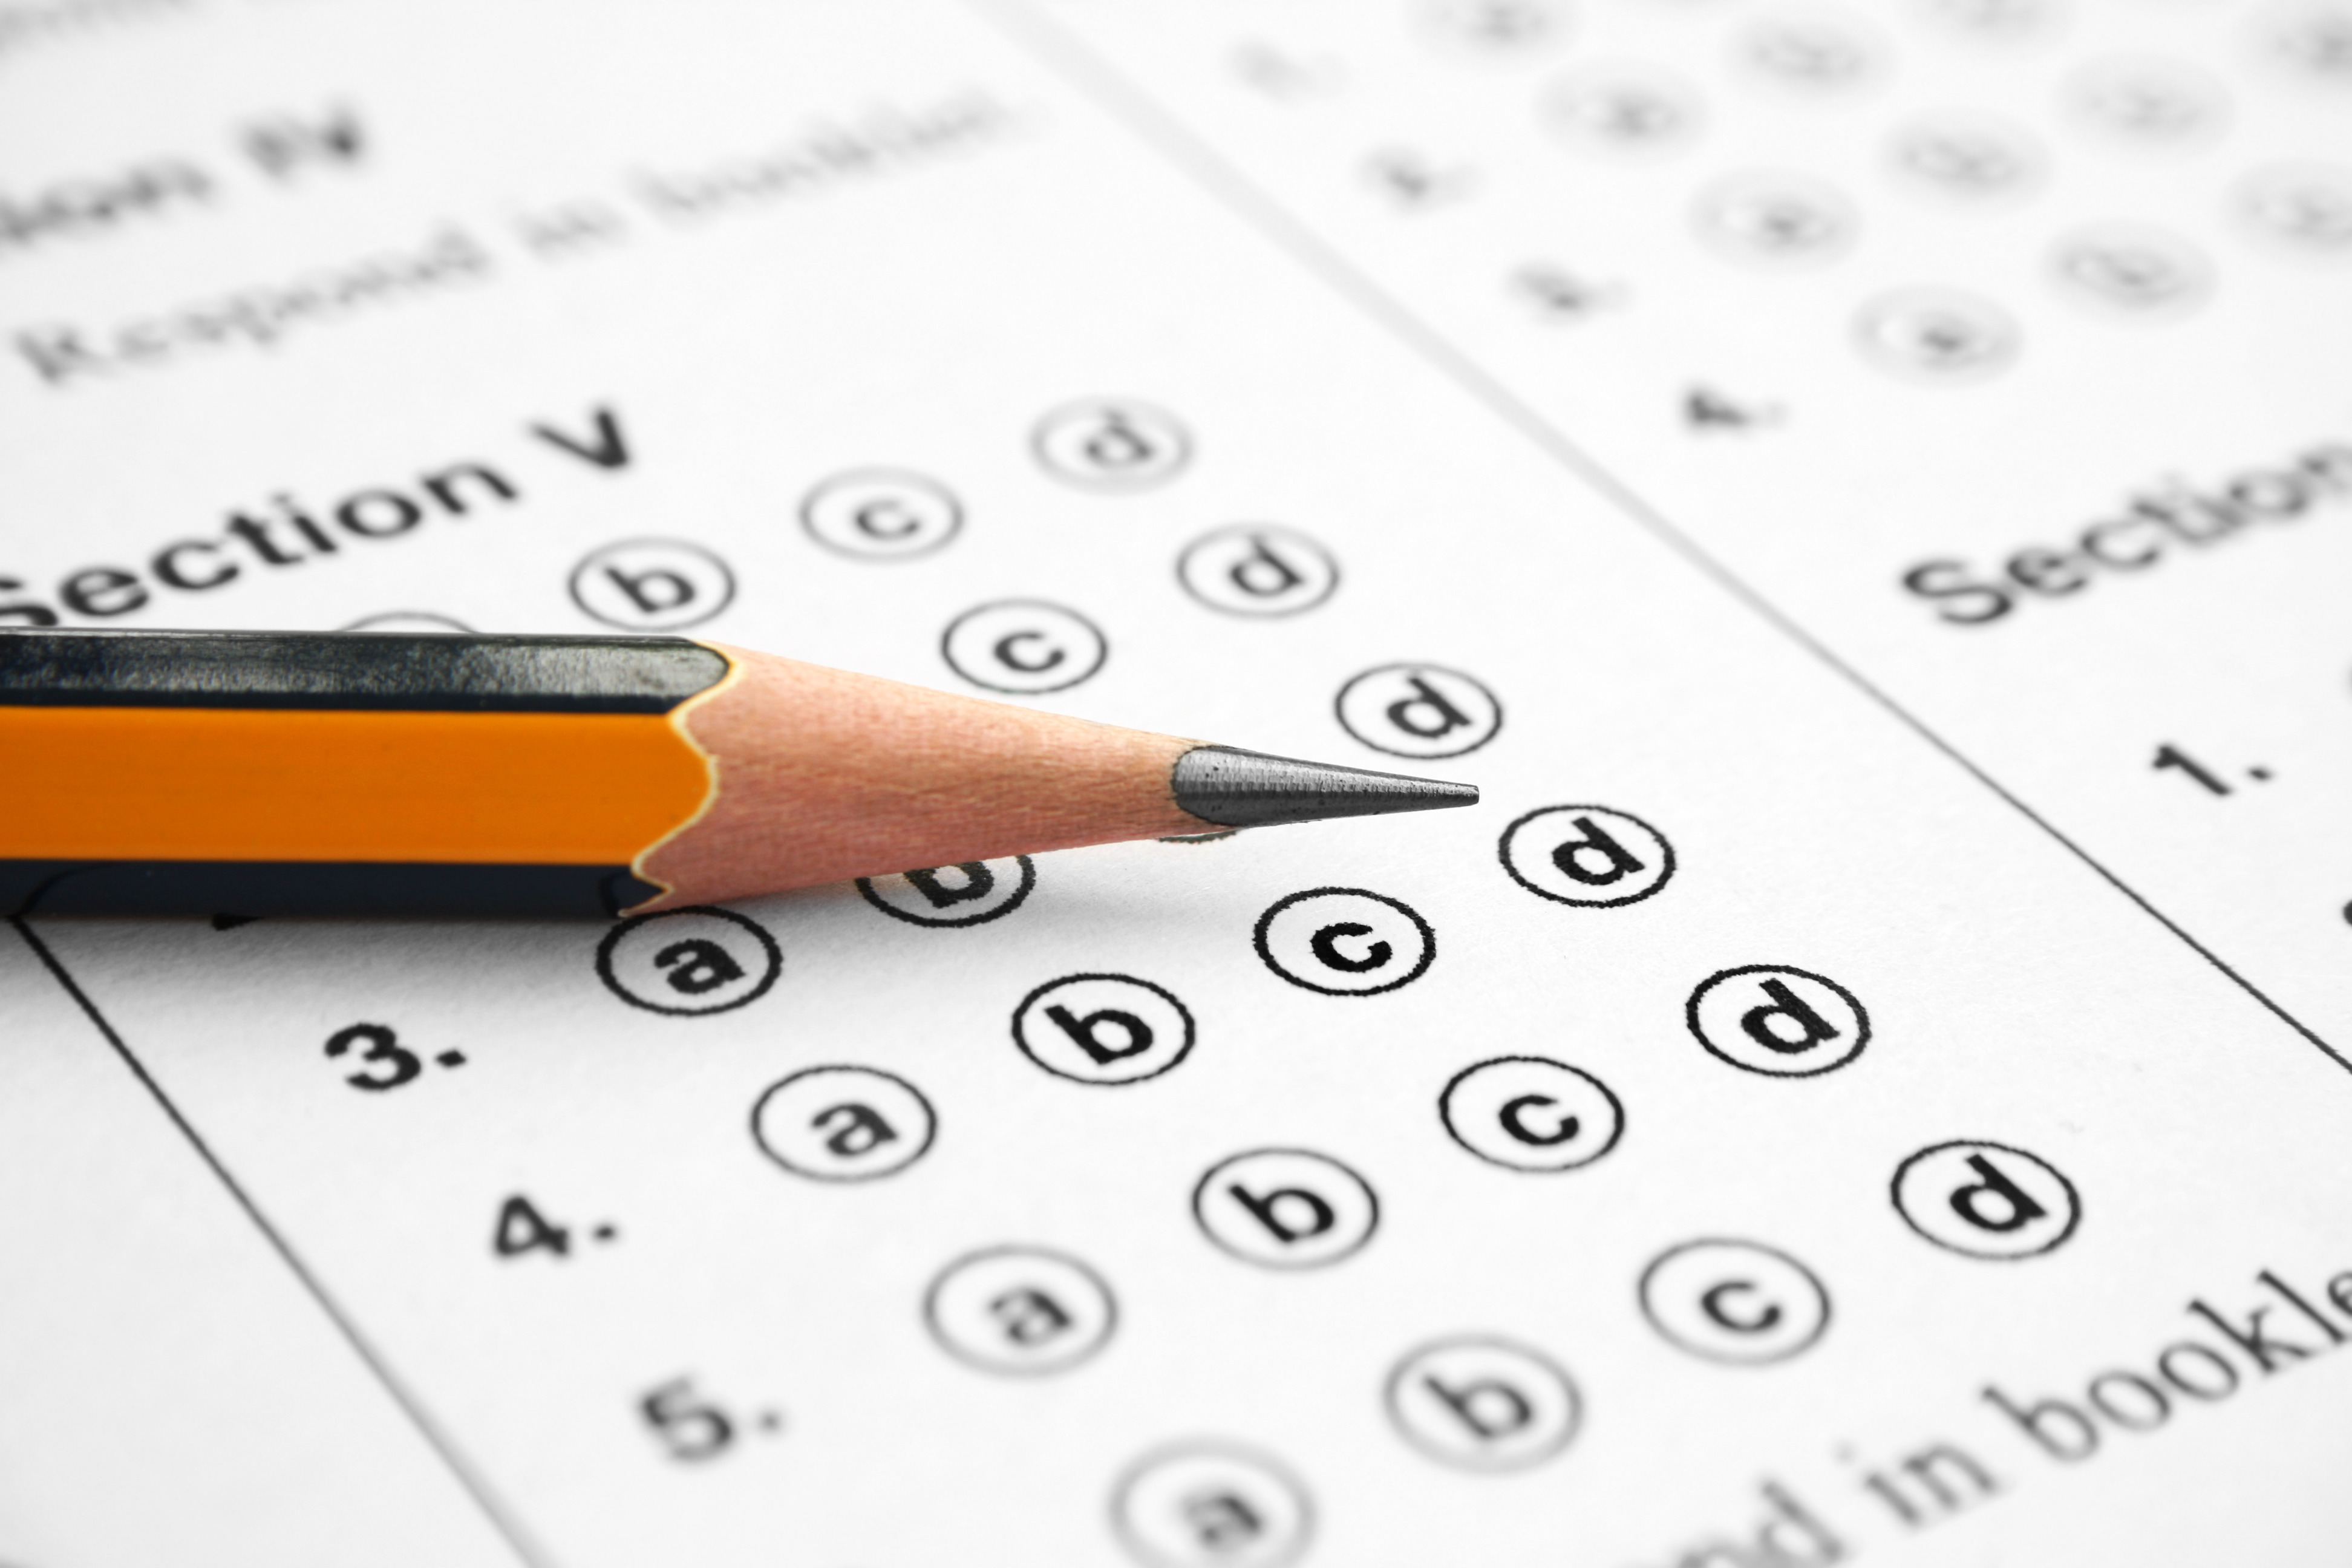 Create Your Own Tests- How to ace your university exams